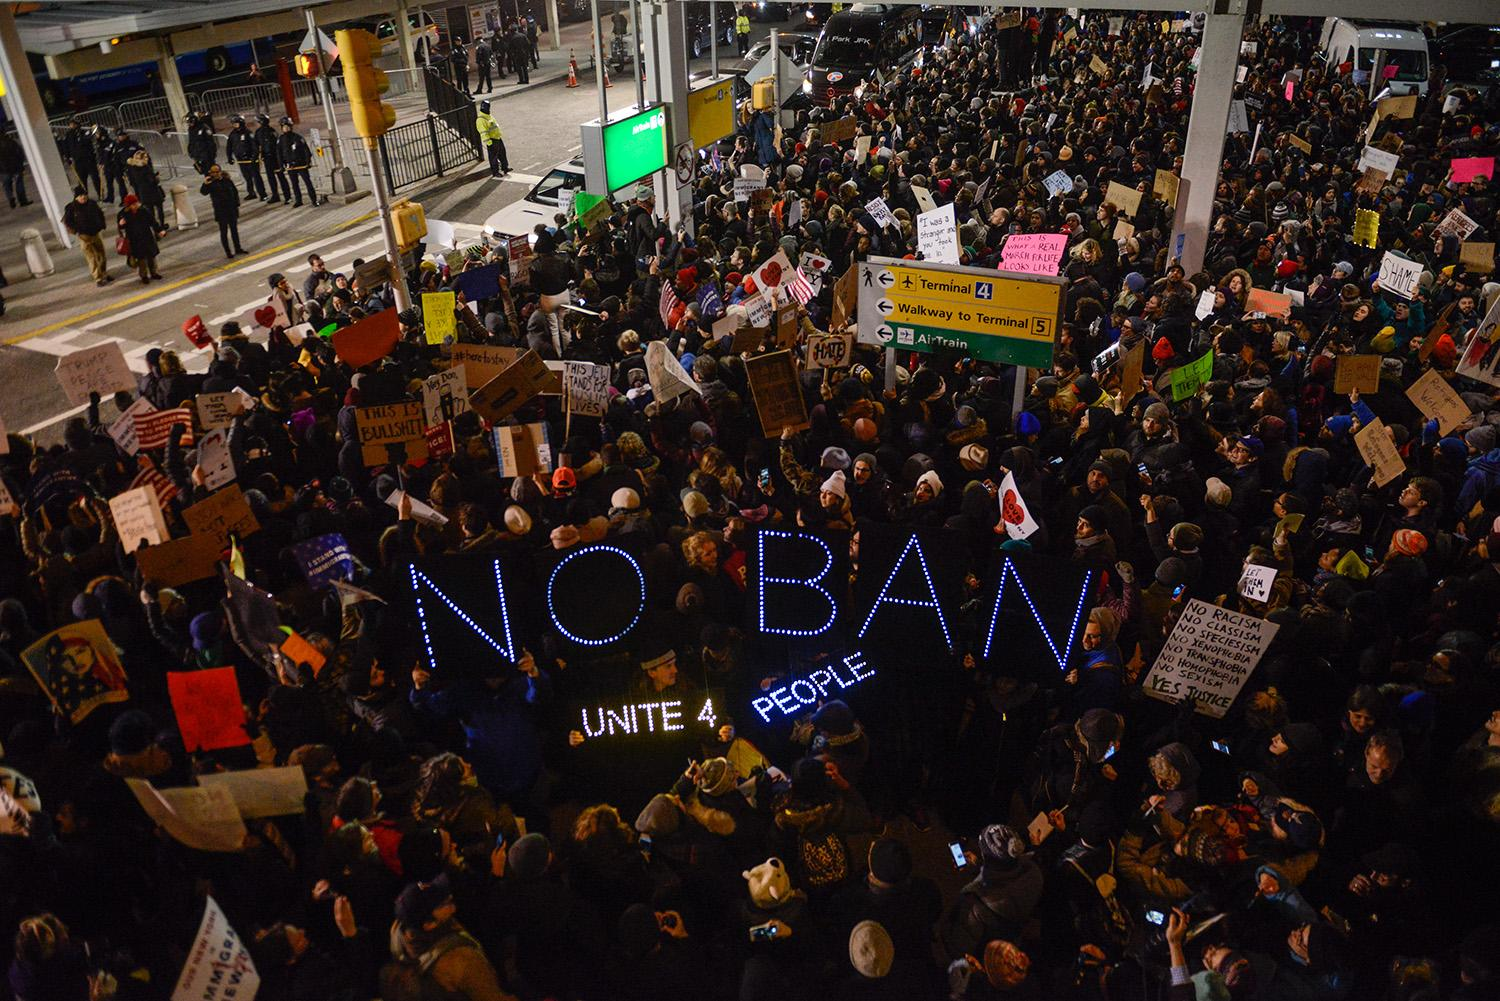 <p>Protestors rally during a demonstration against the Muslim immigration ban at John F. Kennedy International Airport on January 28, 2017 in New York City. (Photo: Stephanie Keith/Getty Images) </p>